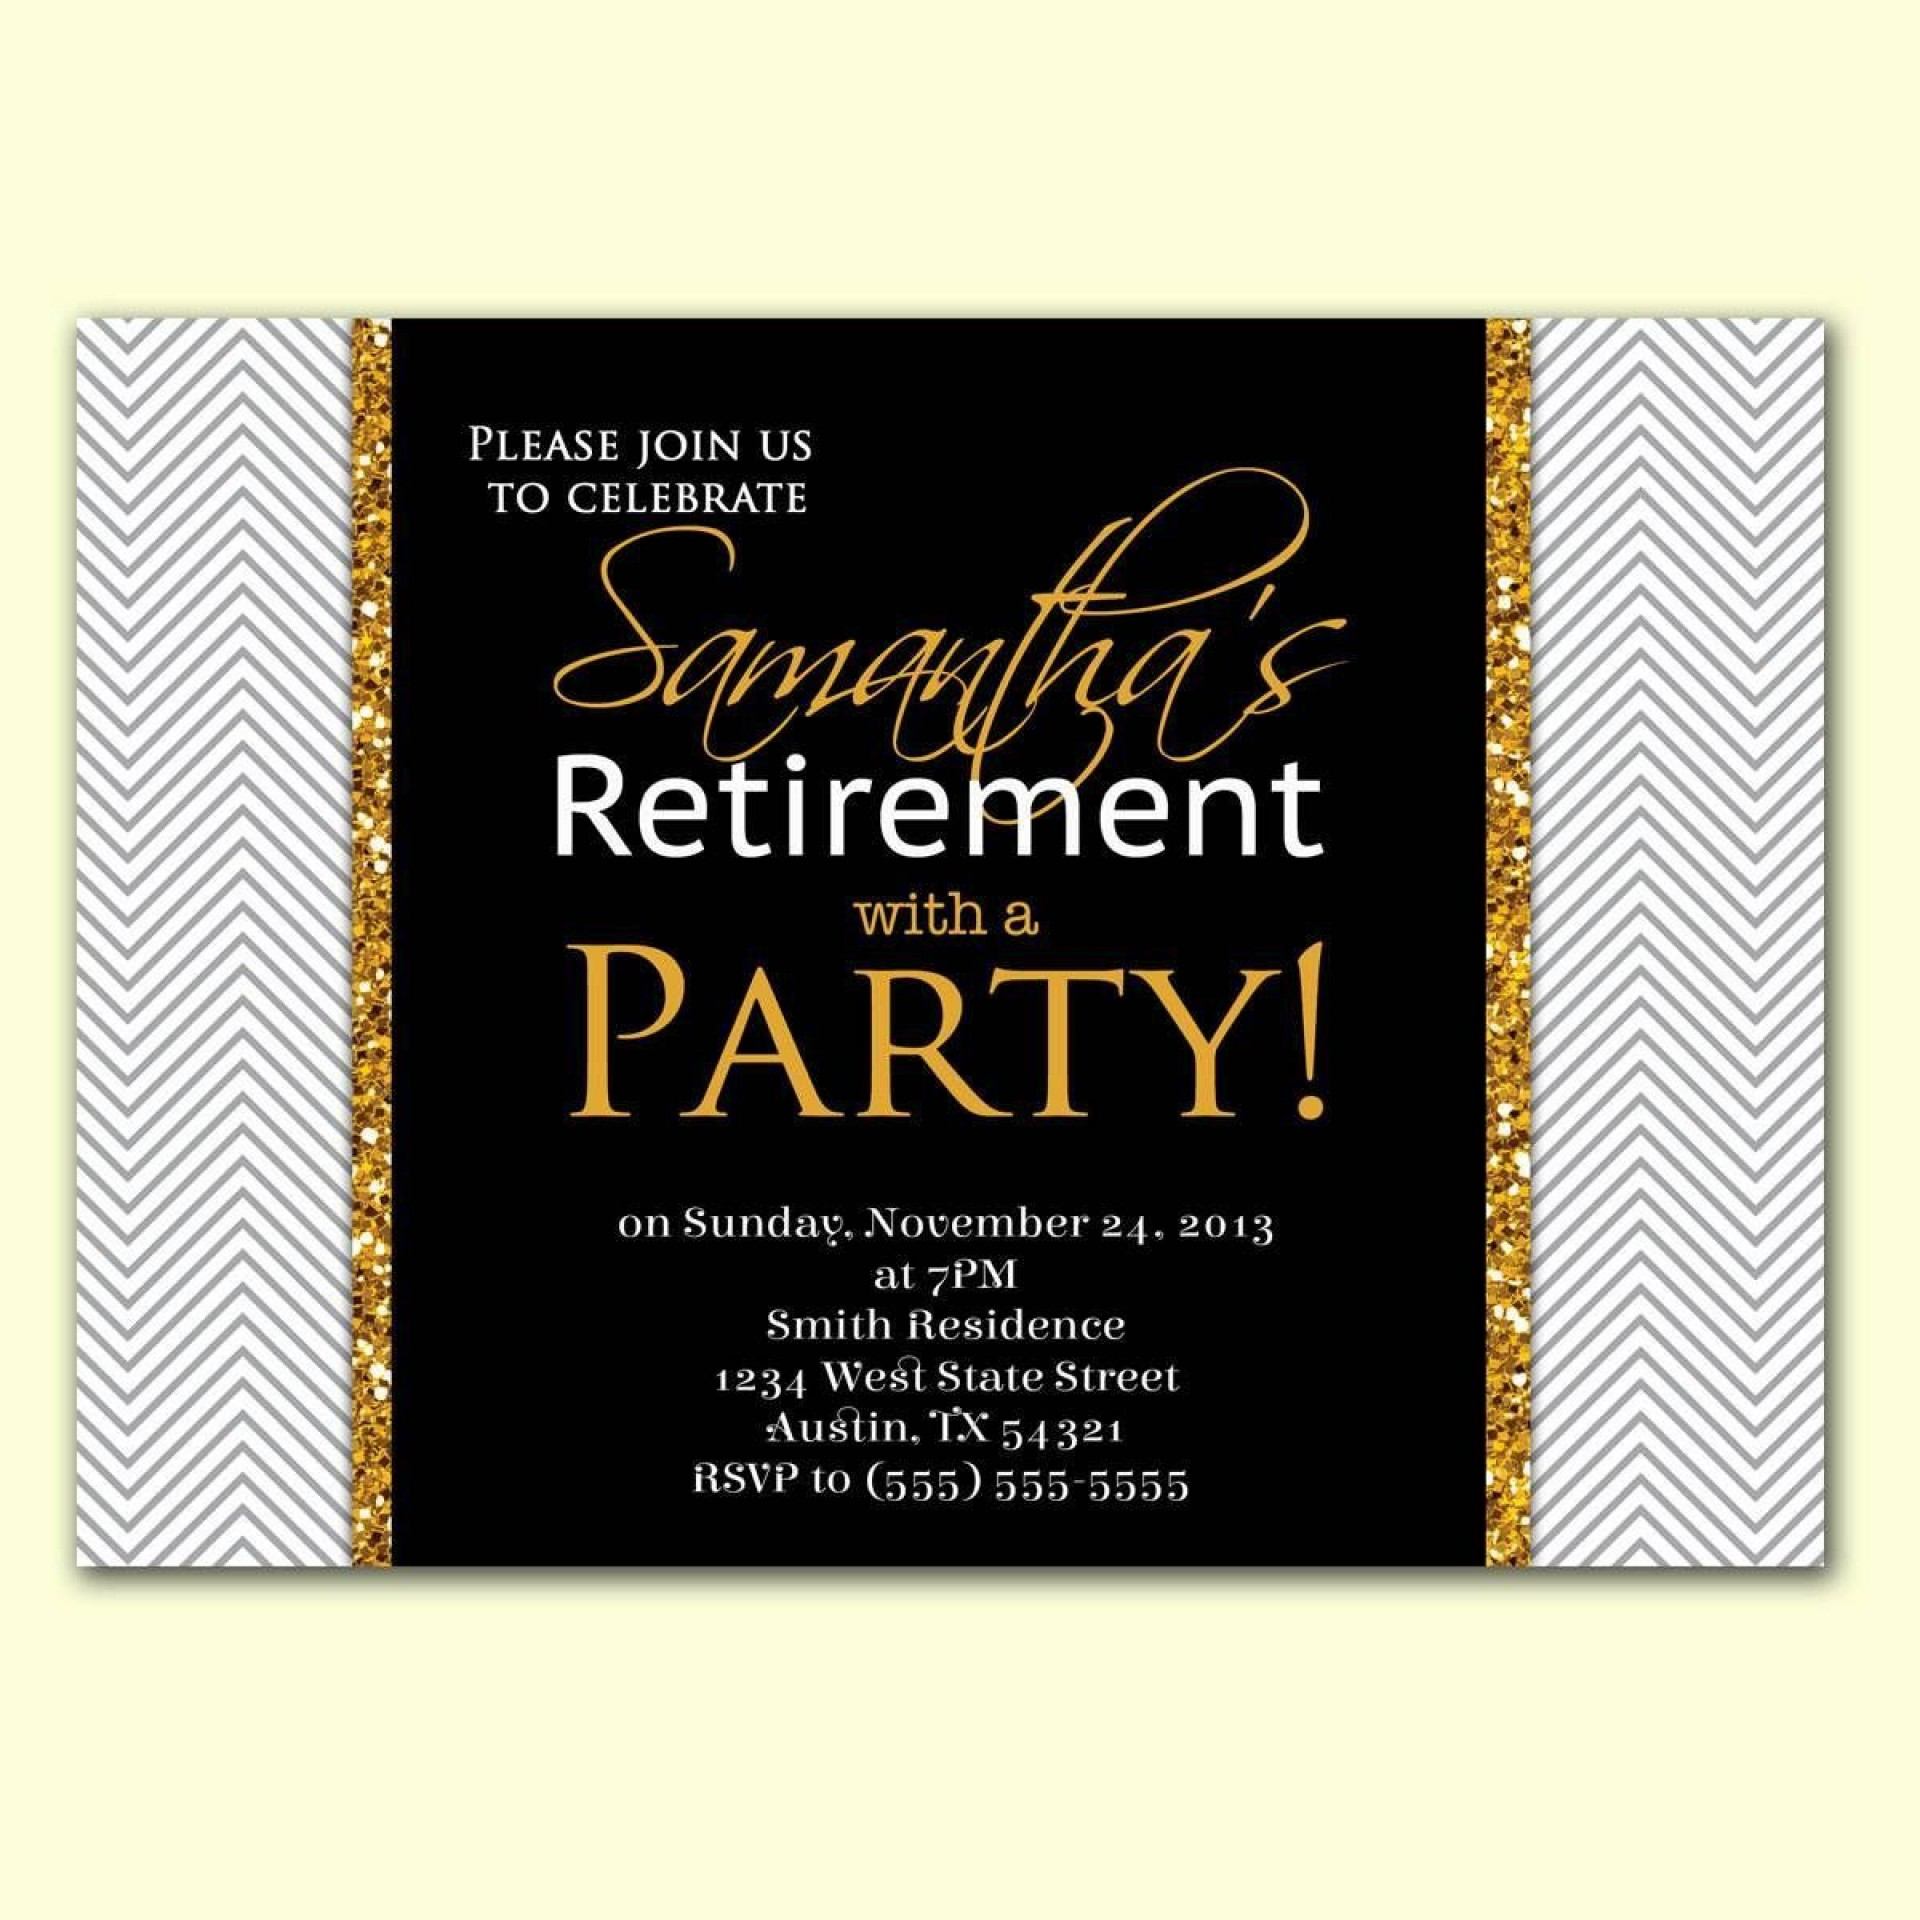 001 Stirring Retirement Party Invitation Template High Resolution  Templates For Free Nurse M Word1920